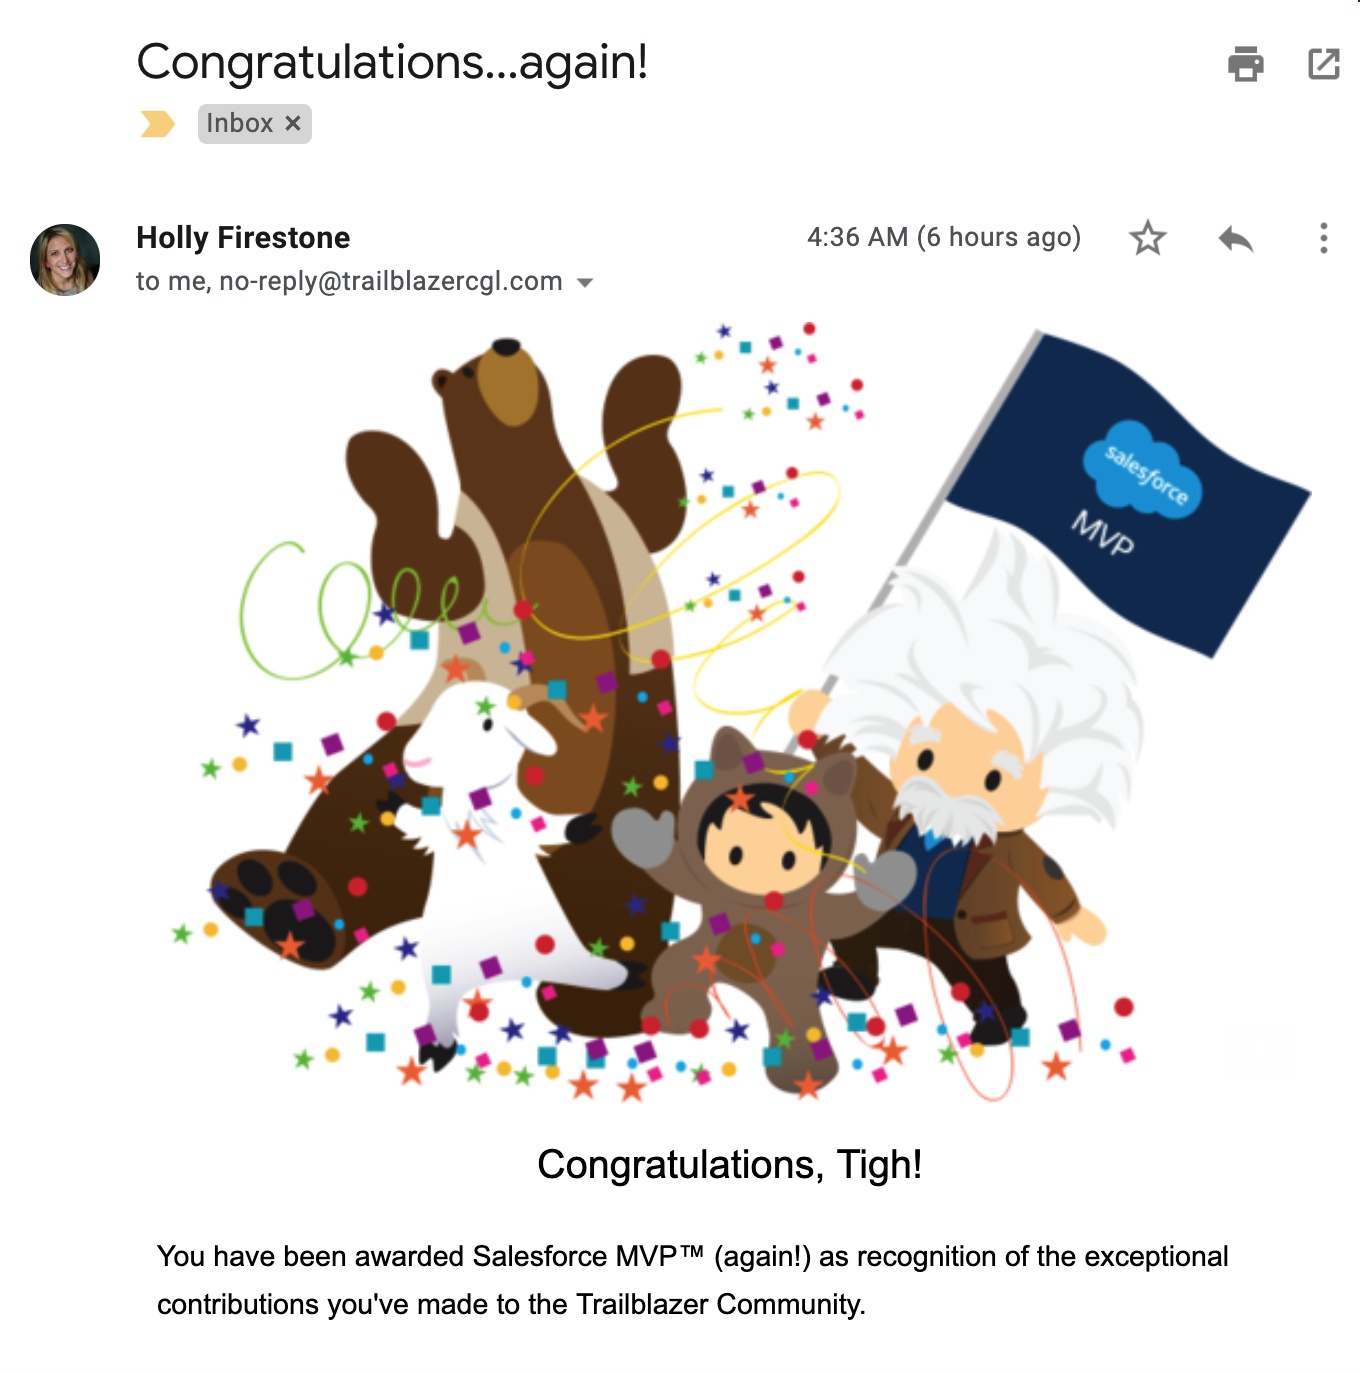 Tigh Loughhead is a 2019 2X Salesforce MVP